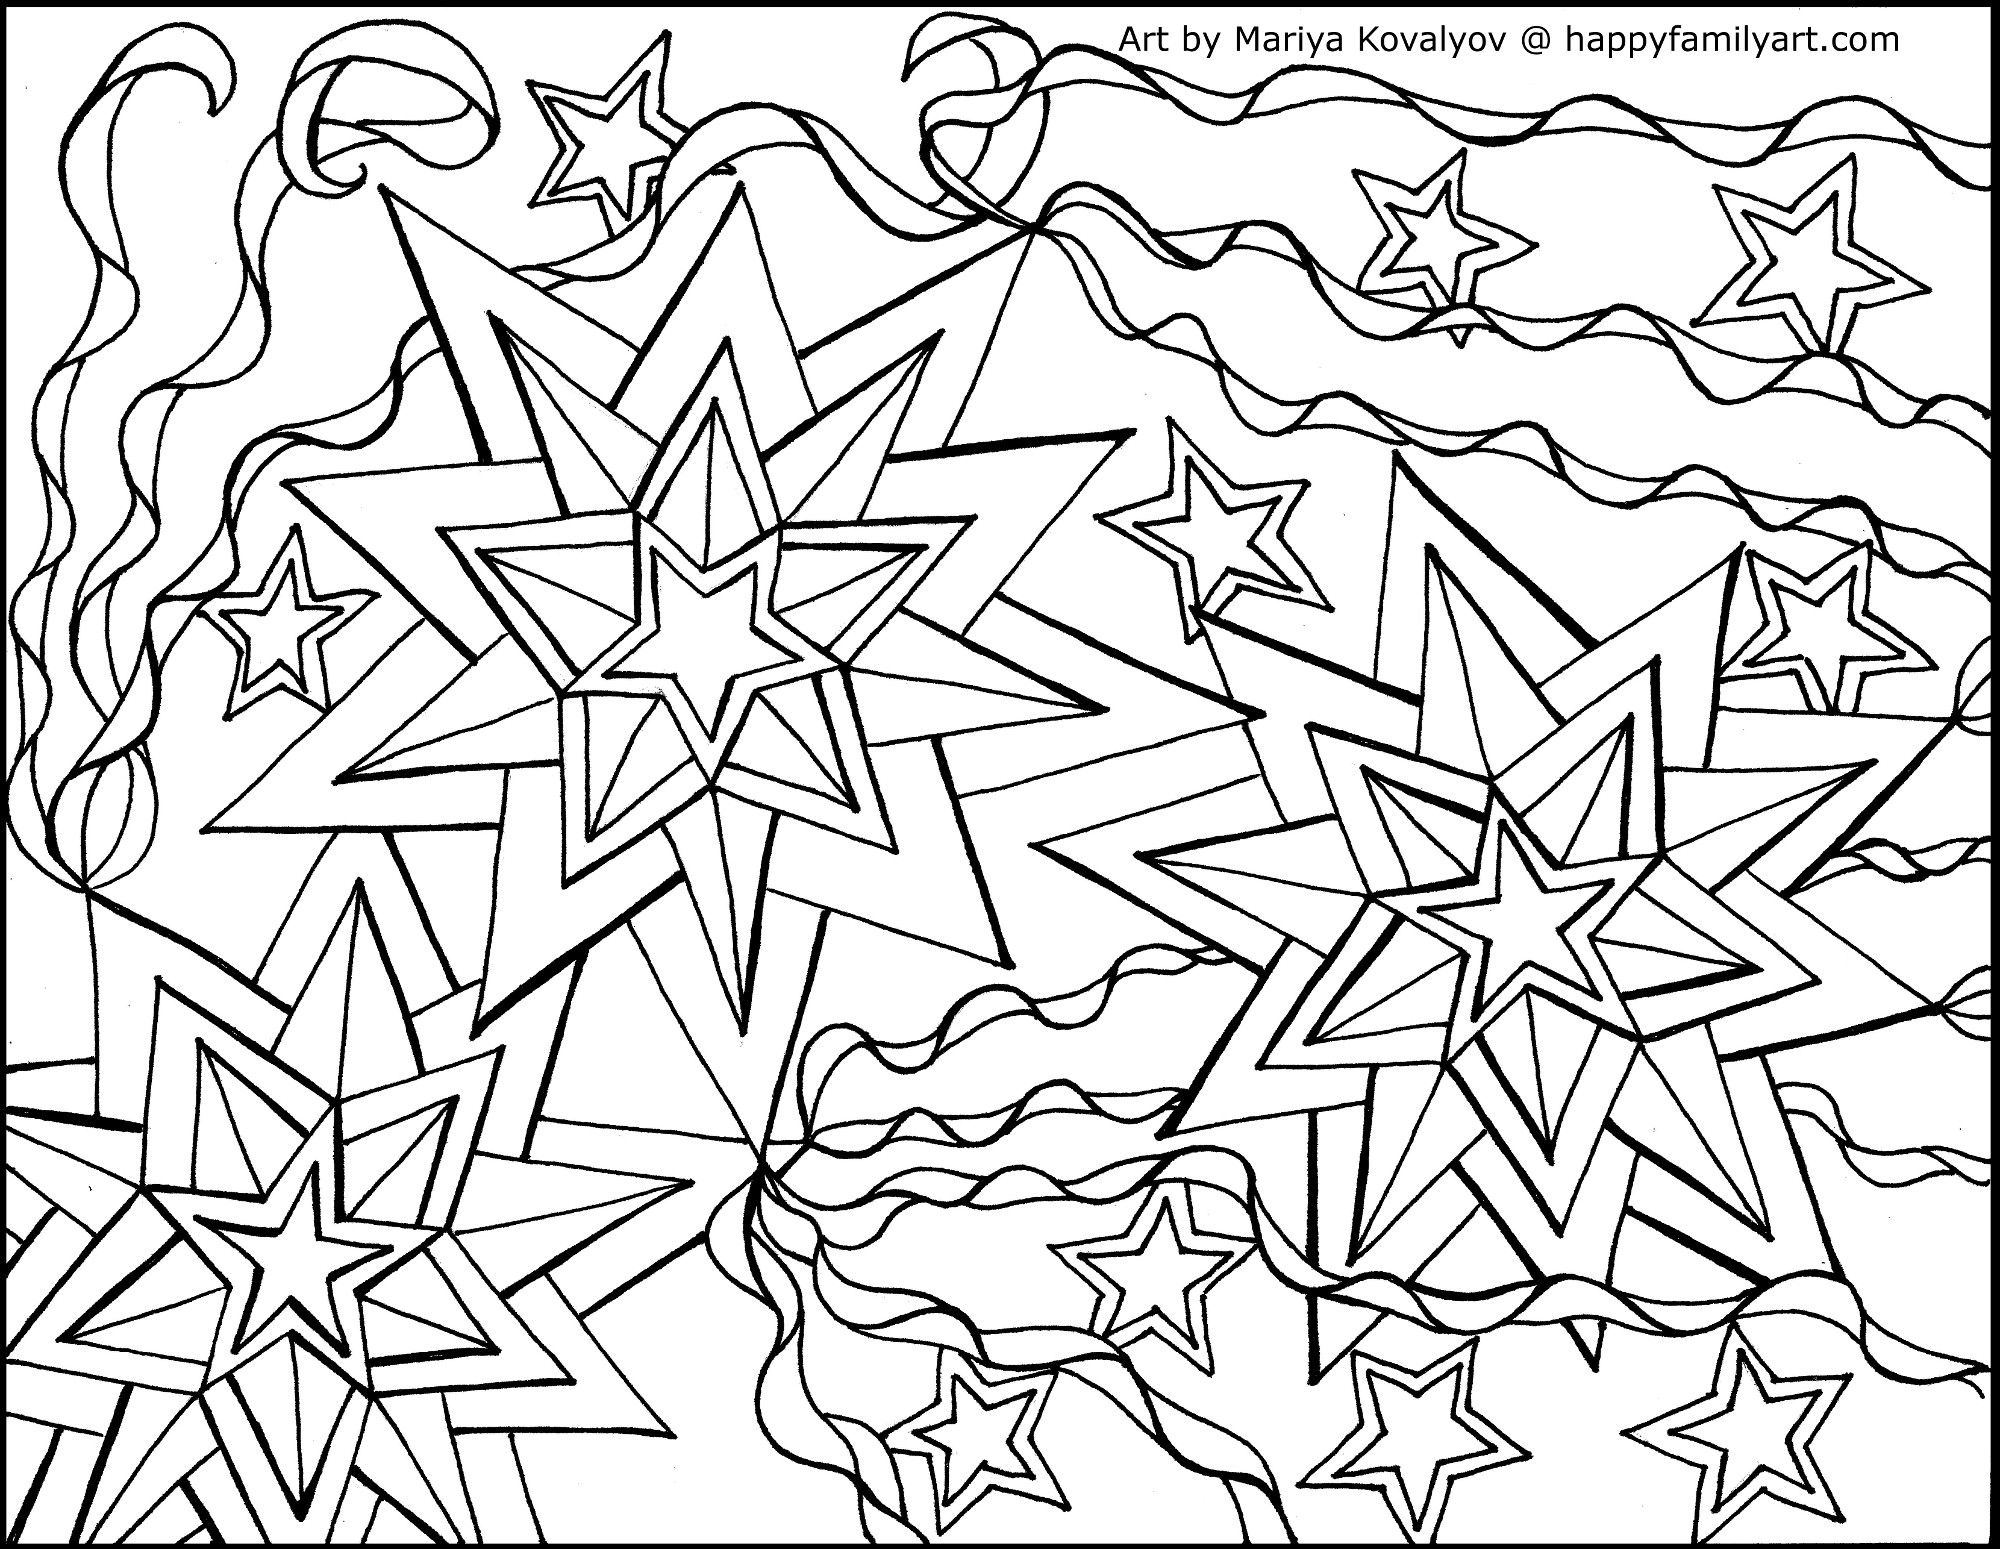 Happy Family Art Original And Fun Coloring Pages In 2020 Memorial Day Coloring Pages Love Coloring Pages Coloring Pages